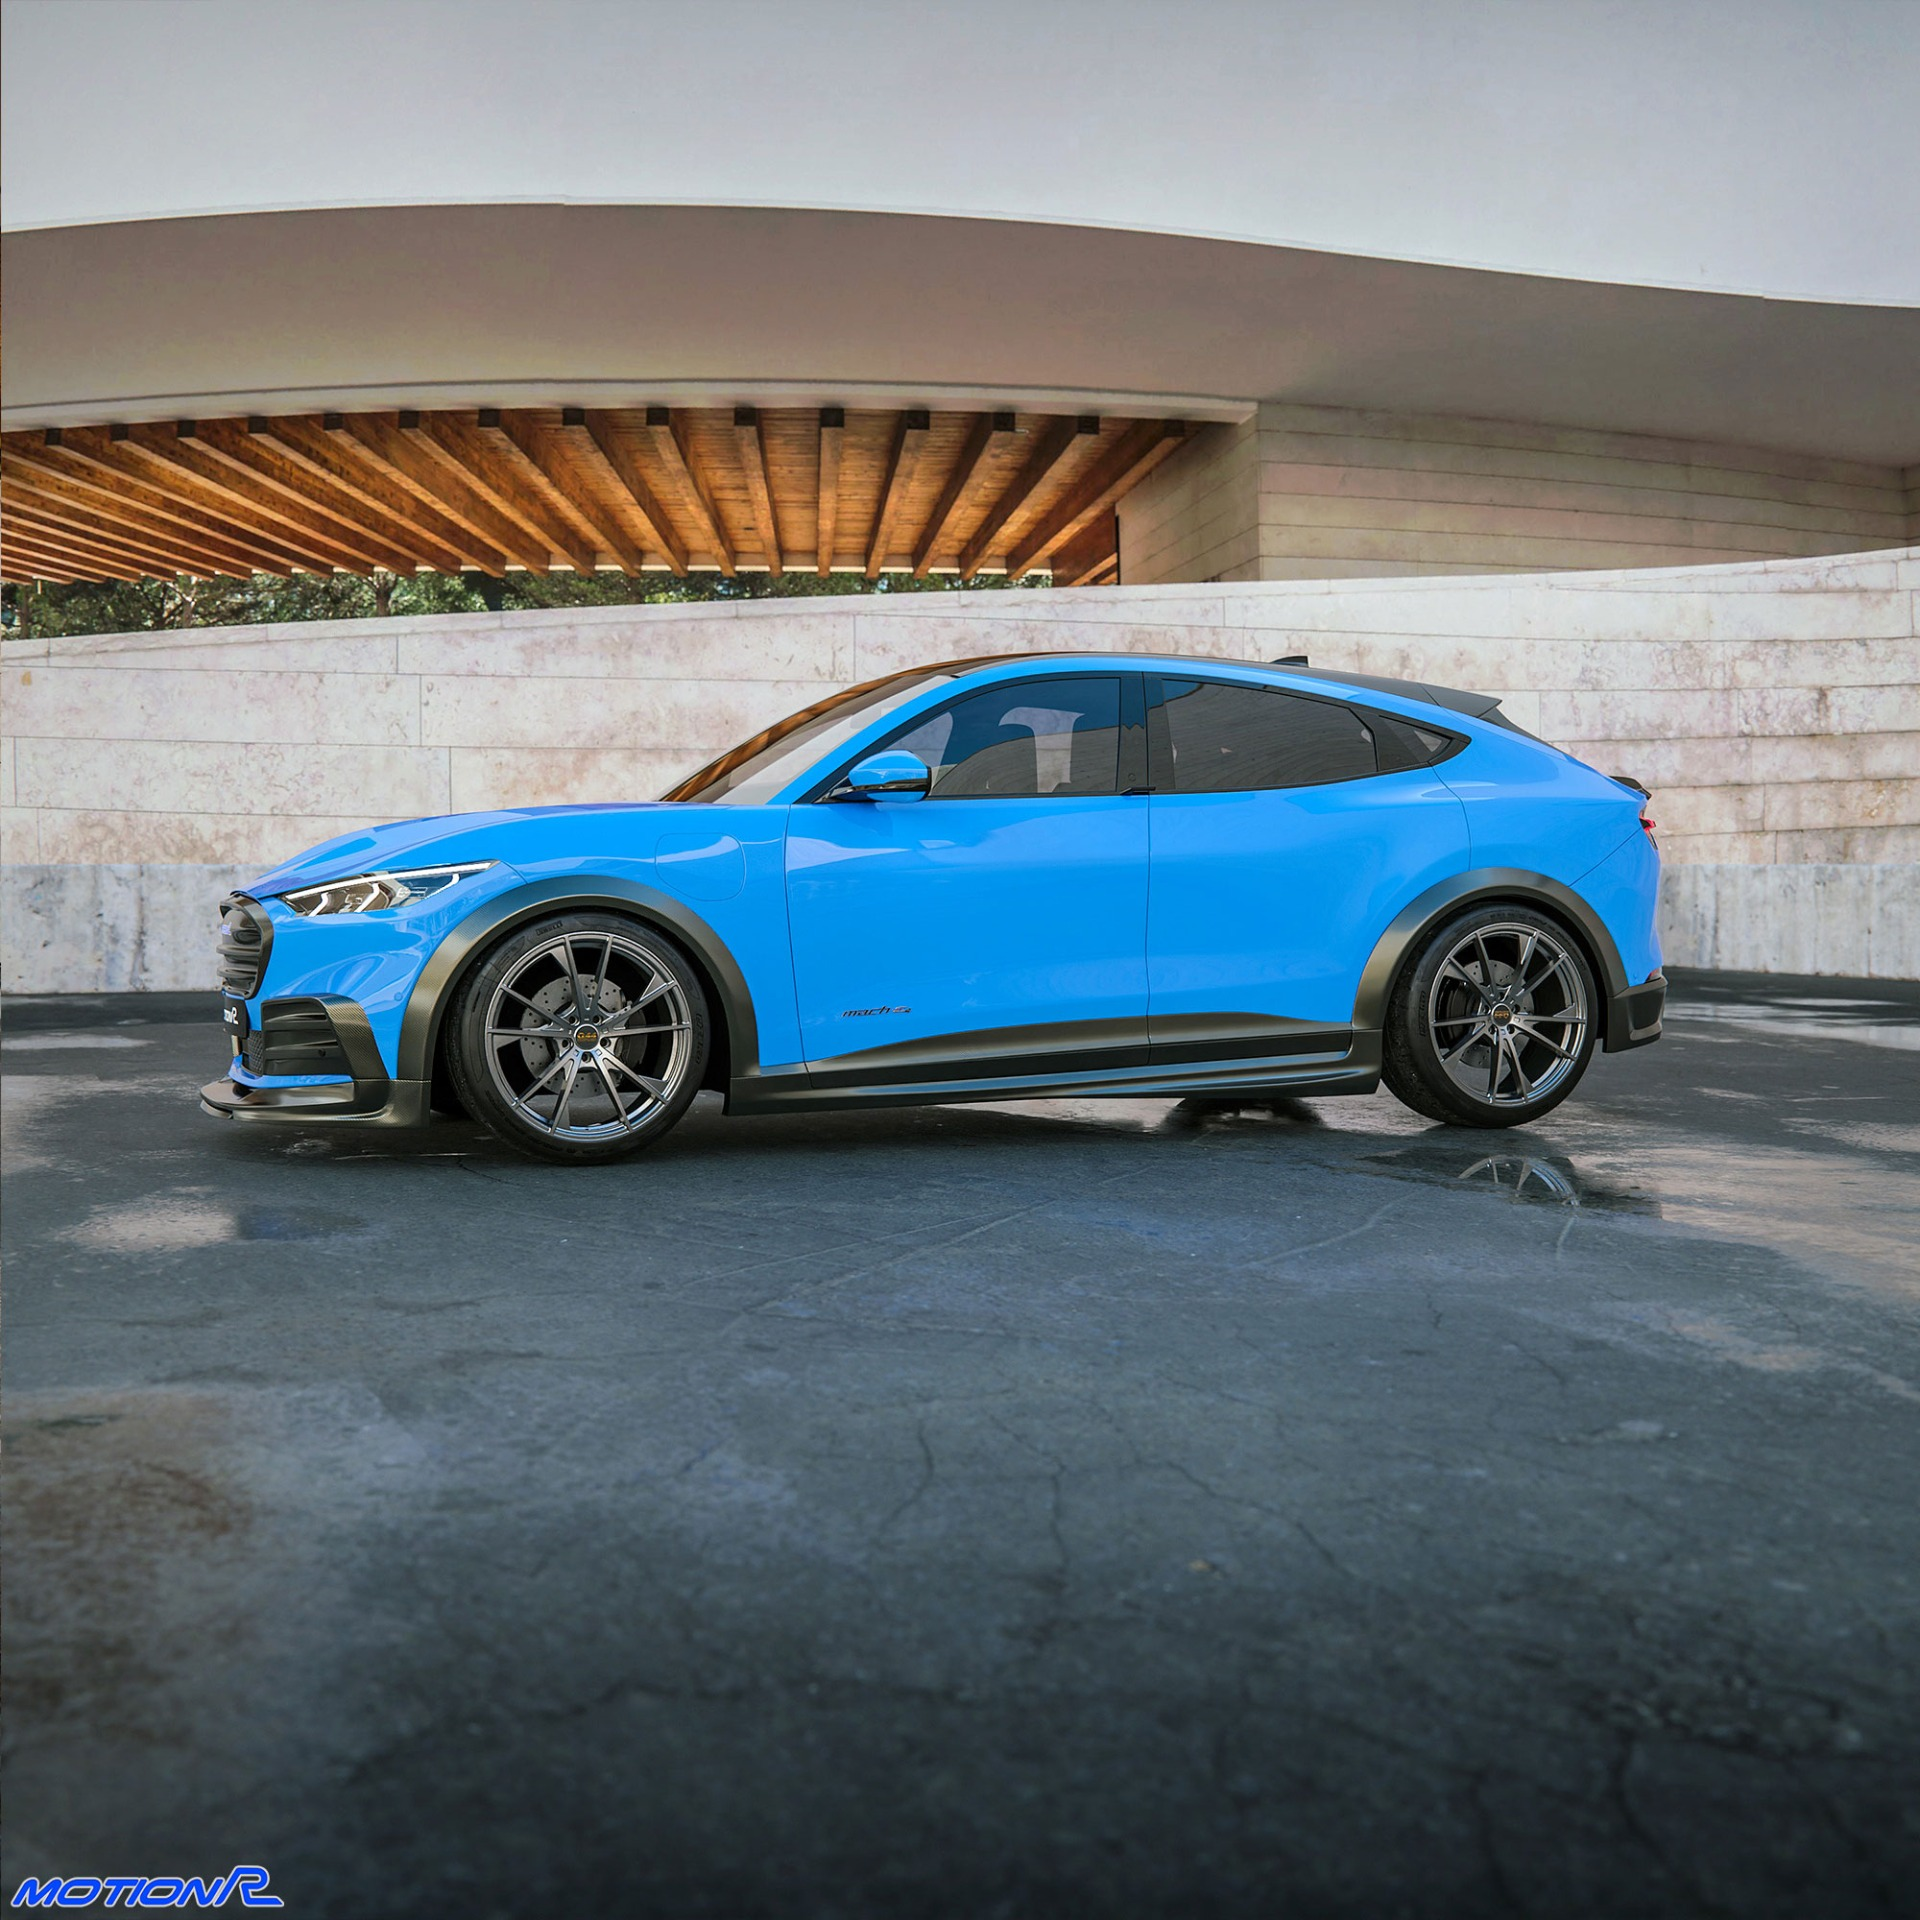 Motion R Design Ford Mustang Mach-E